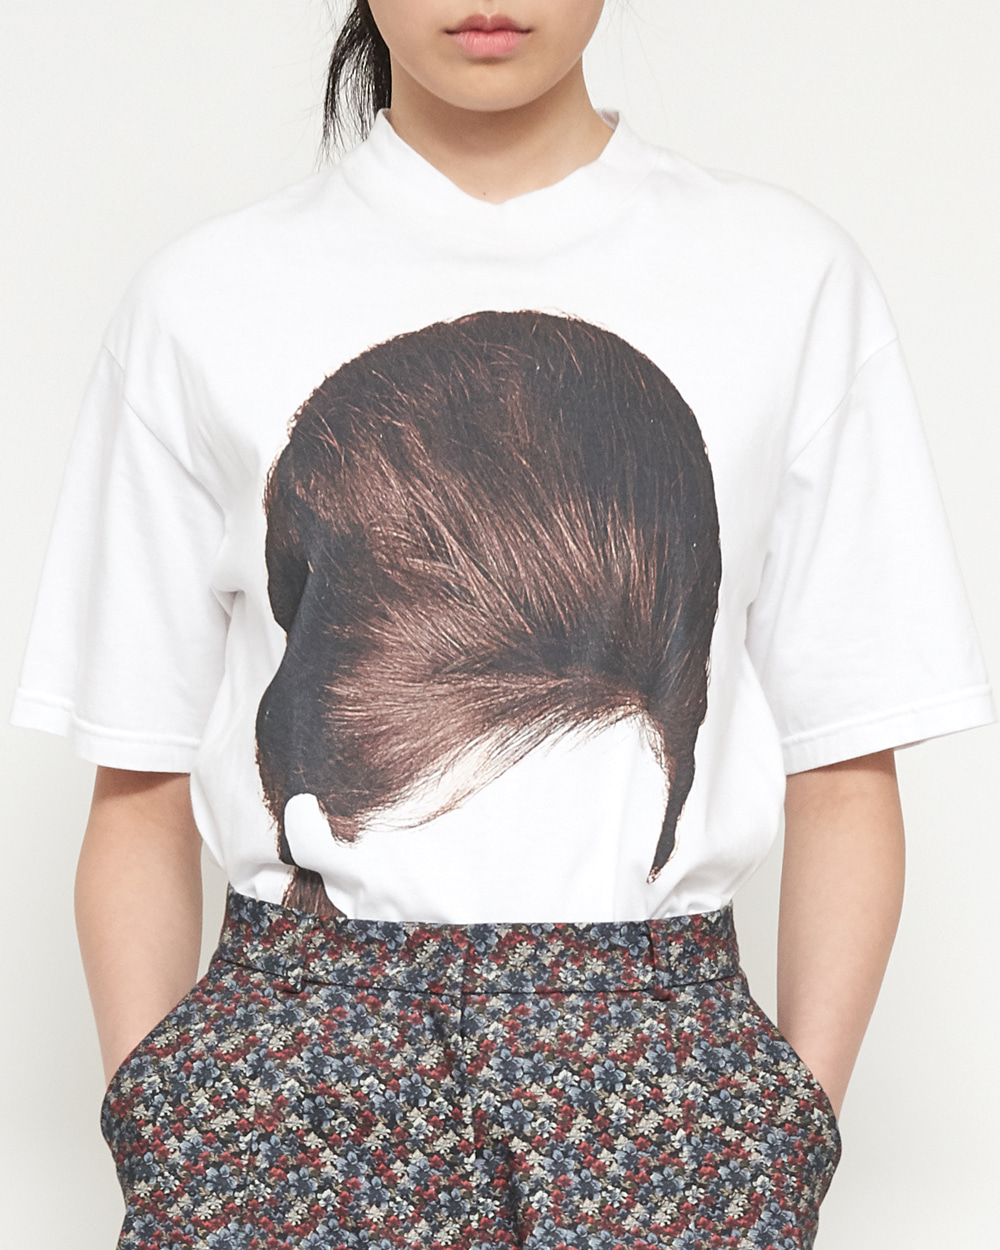 BROWN HAIR T-SHIRT